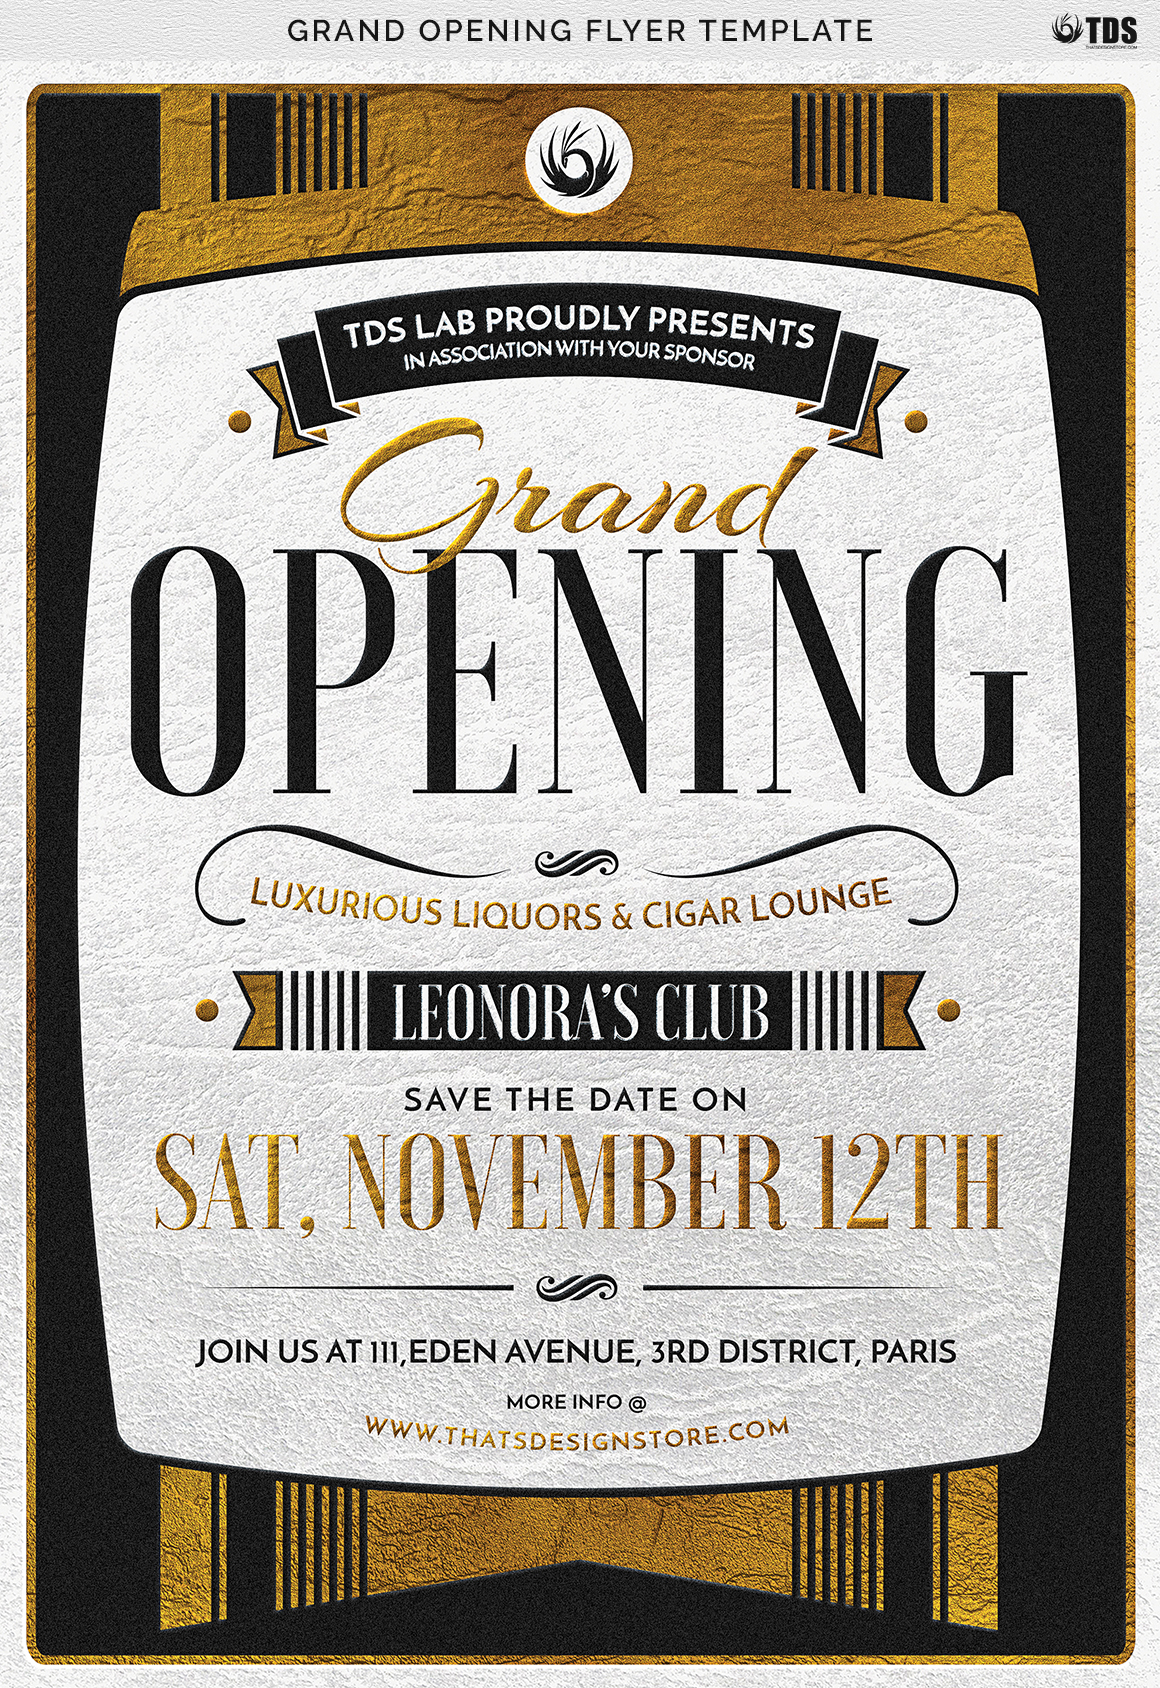 Grand Opening Flyer Template example image 9